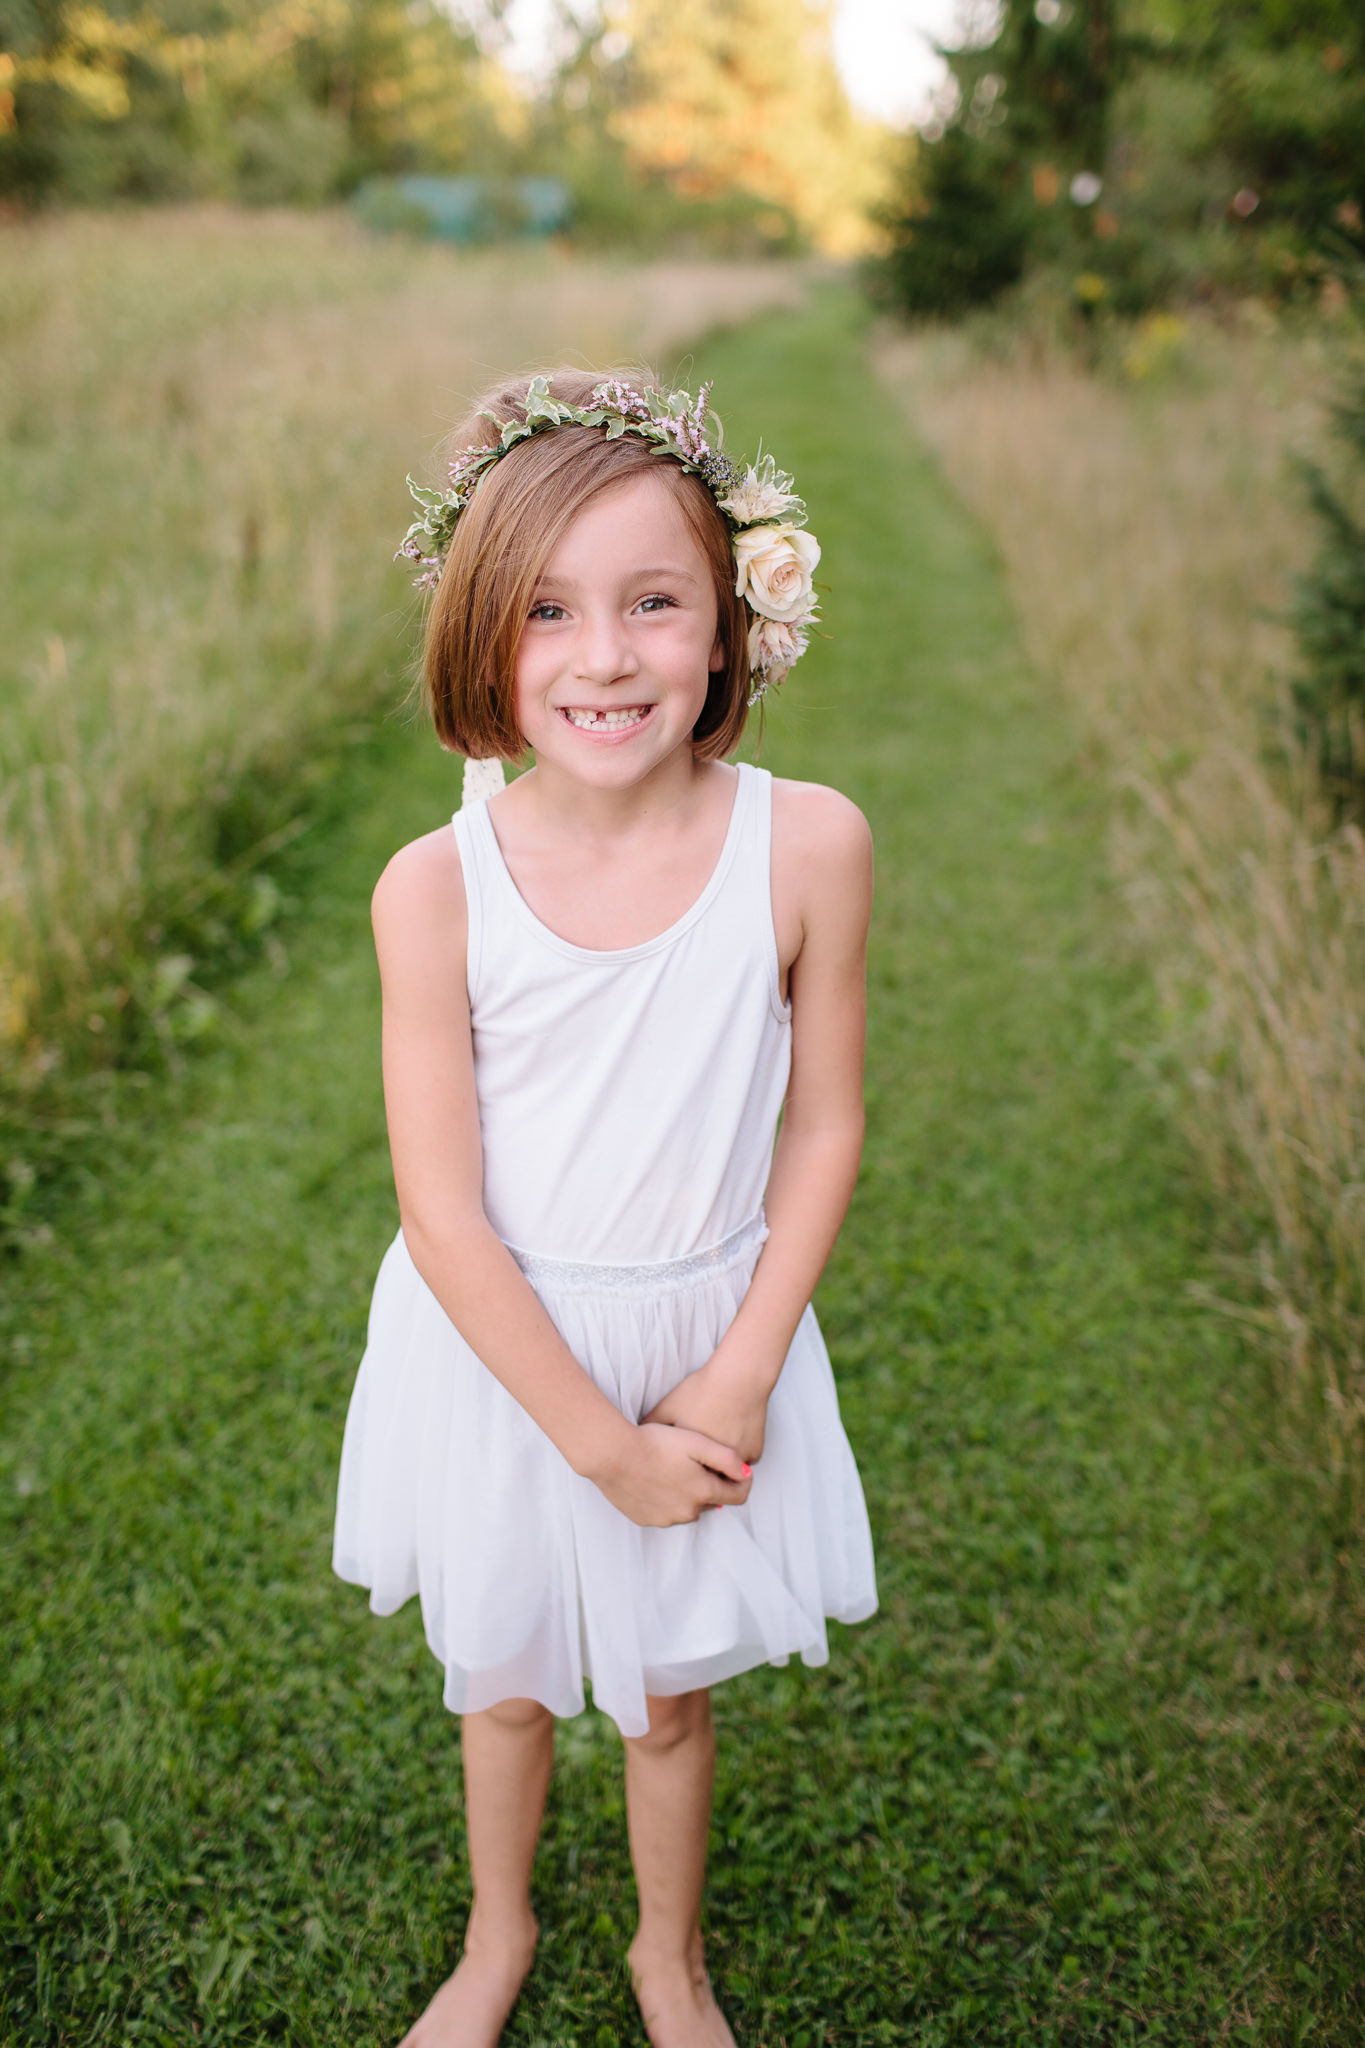 girl standing in grass smiling for picture